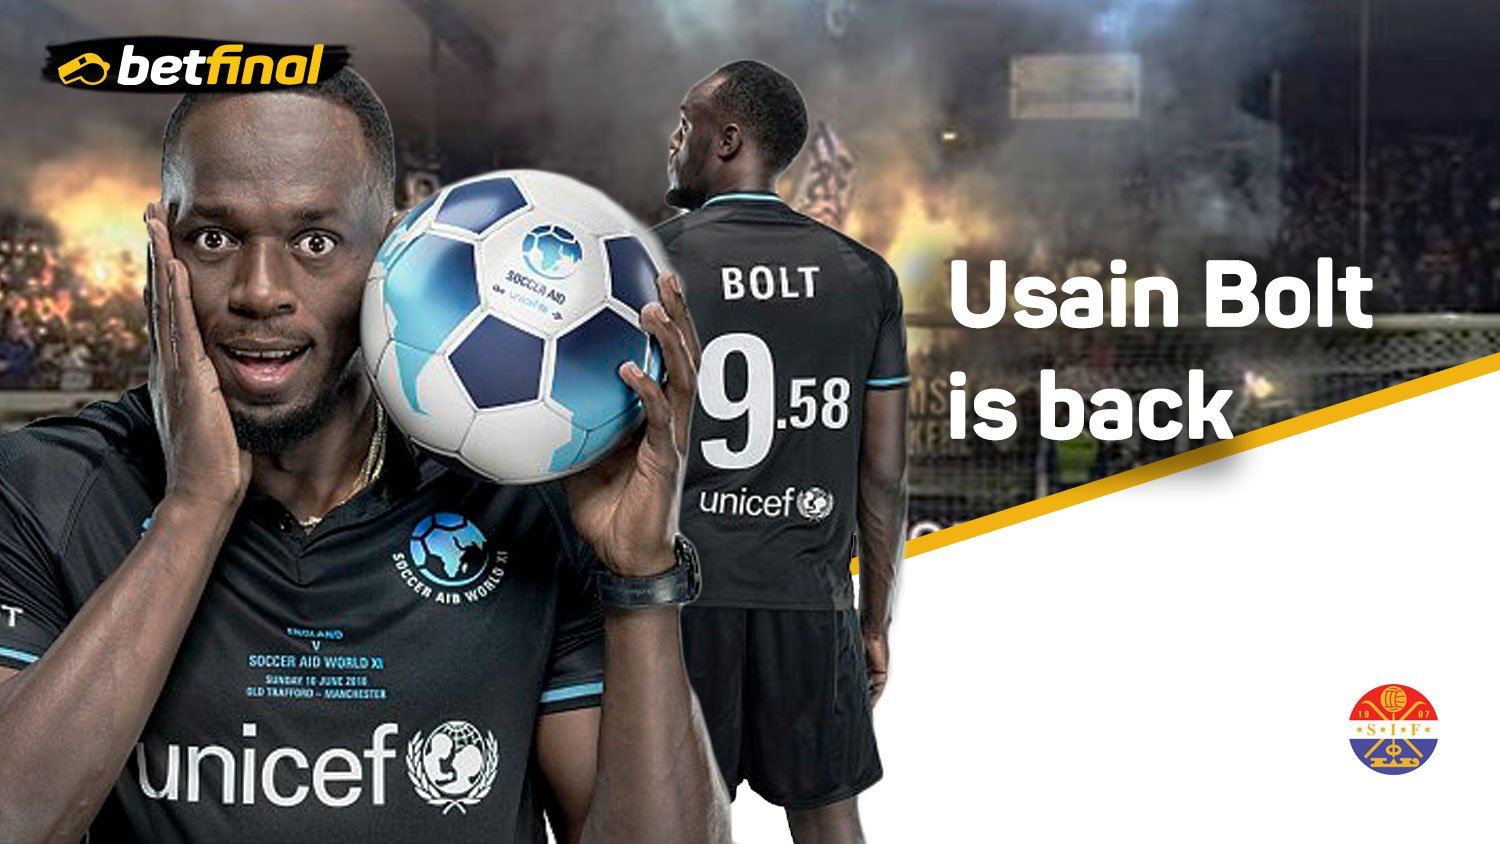 Bolt is back – Usain Bolt Returns. Strømsgodset Vs Norway U19s. Marienlyst Stadion Tuesday, June 5.